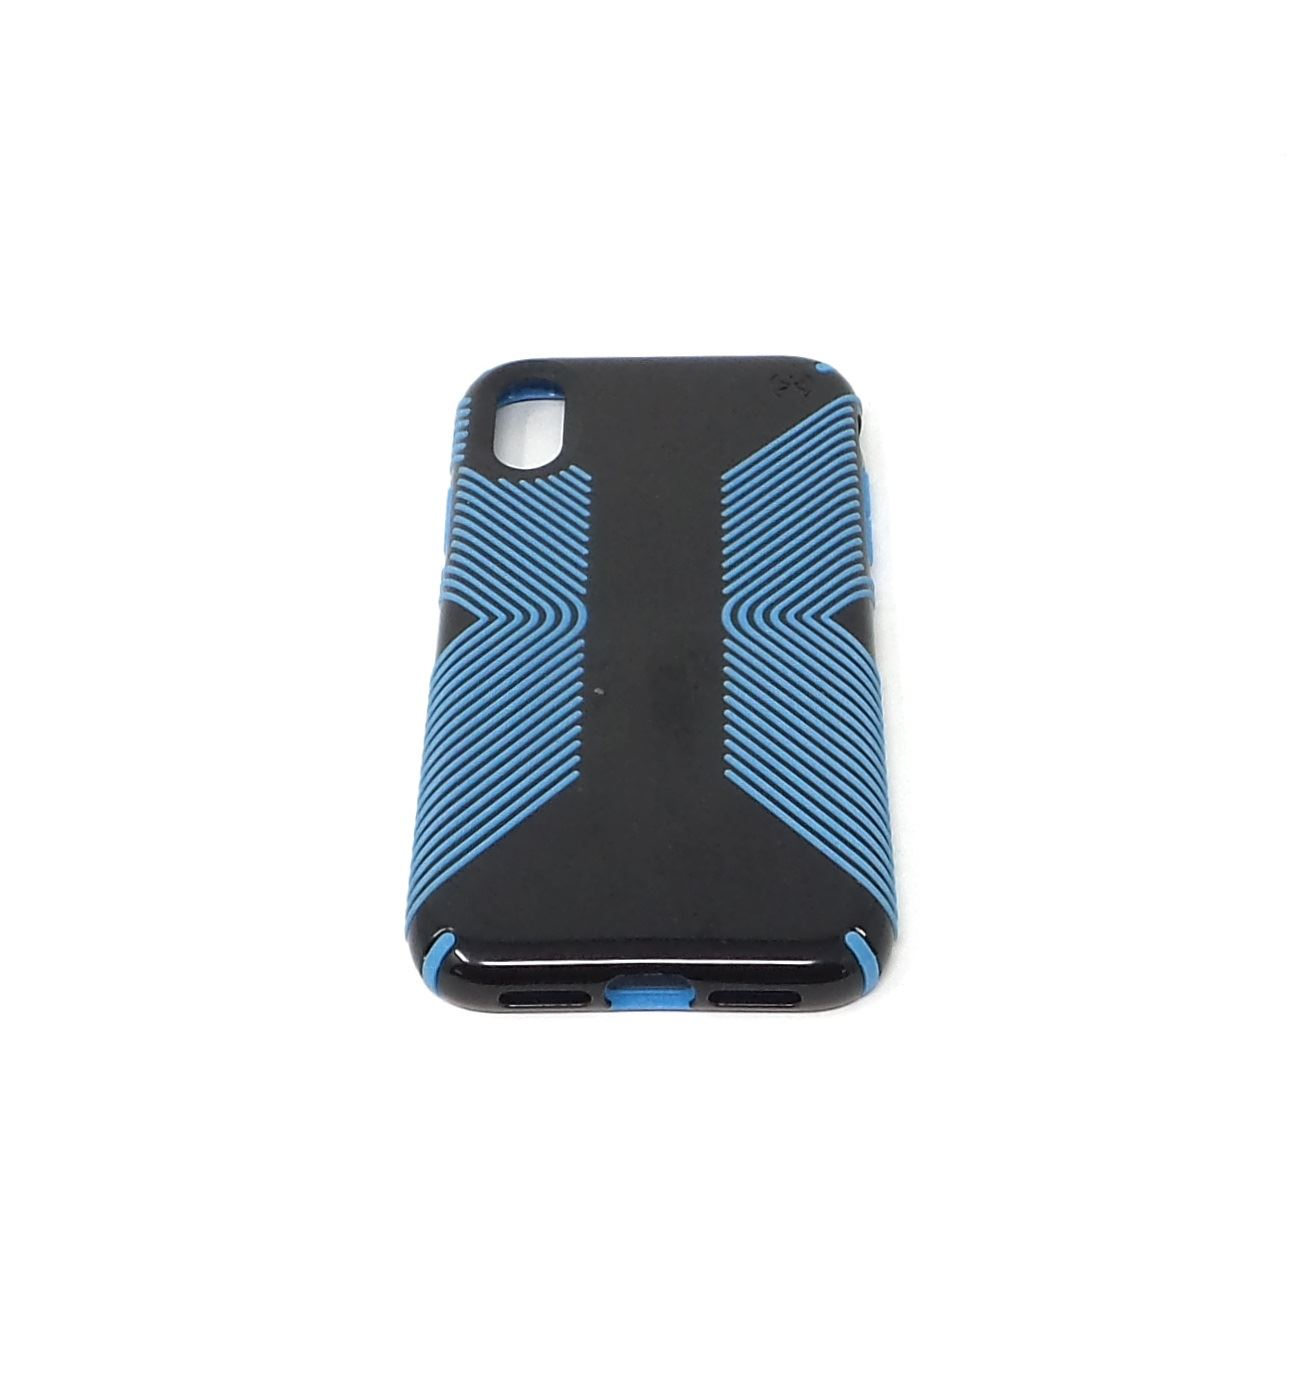 new styles 12b91 1610b Details about Speck Presidio Glossy Grip Case For Apple iPhone XR  120250-7717 Neptune Blue